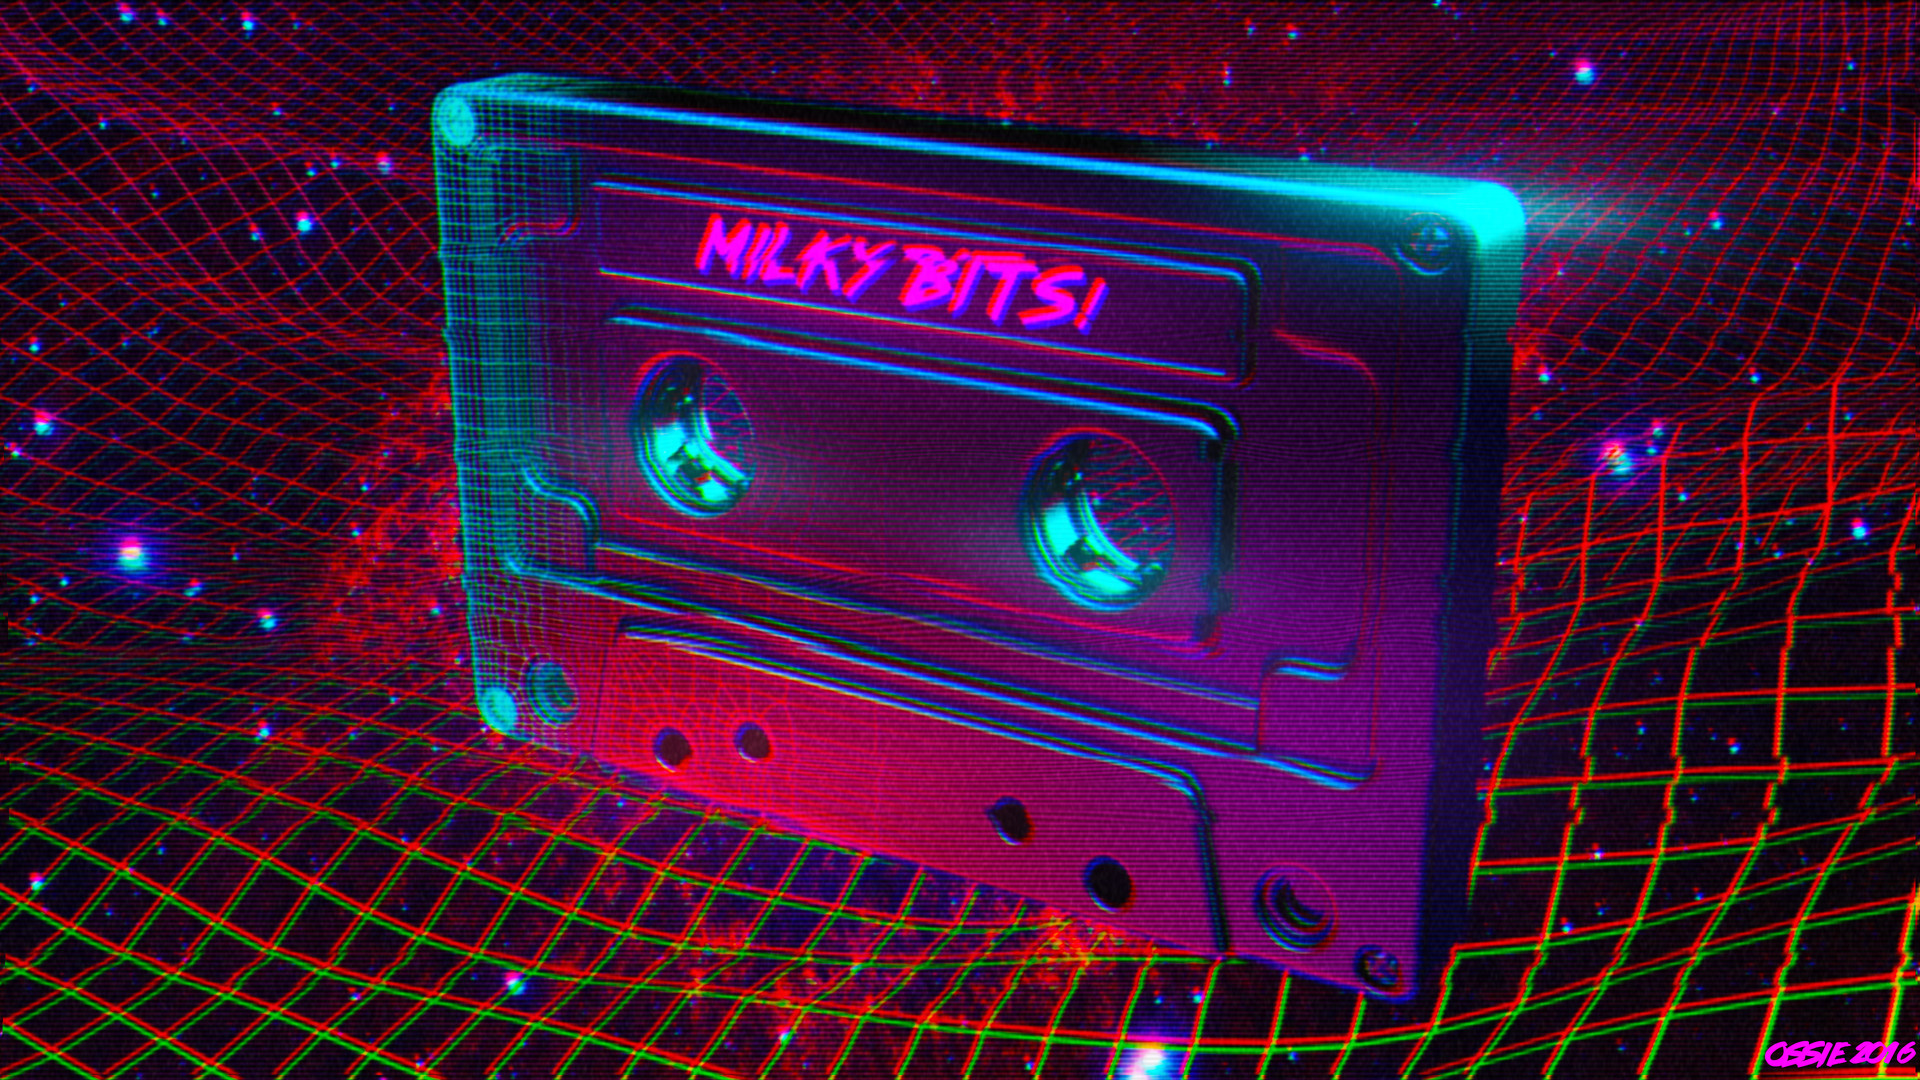 Wallpaper 80 S 1920x1080 Download Hd Wallpaper Wallpapertip